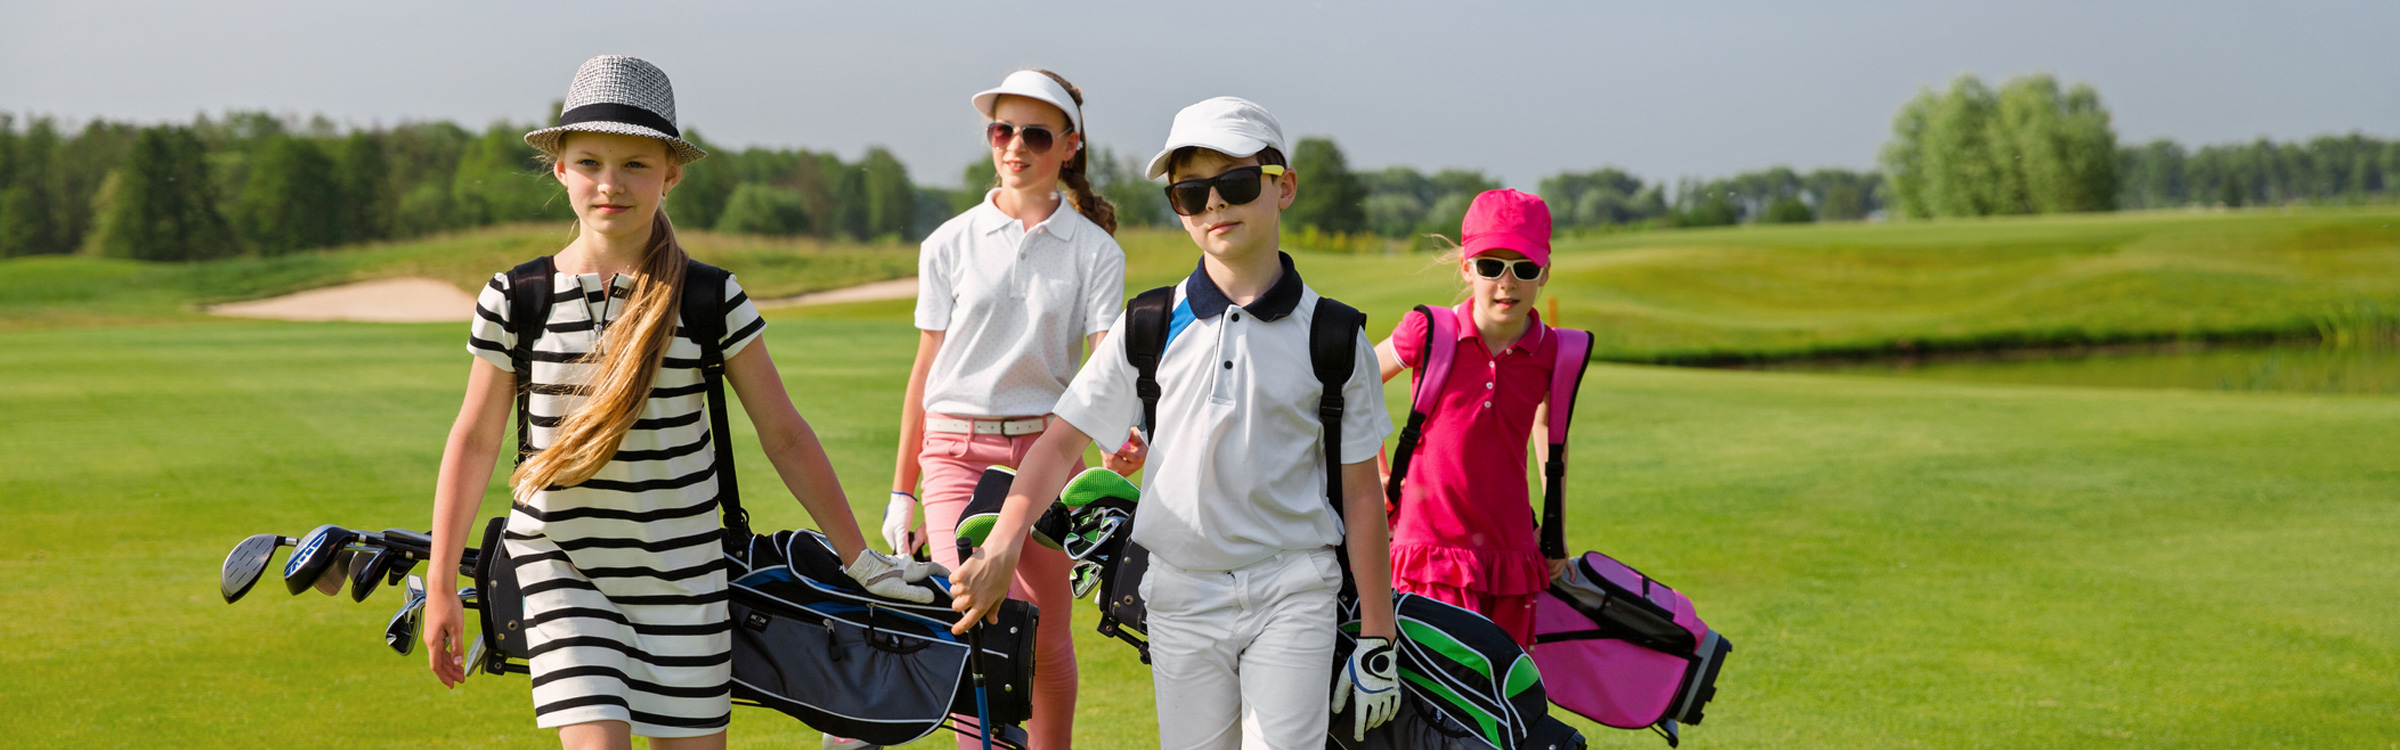 kids from golf camp walking down the fairway